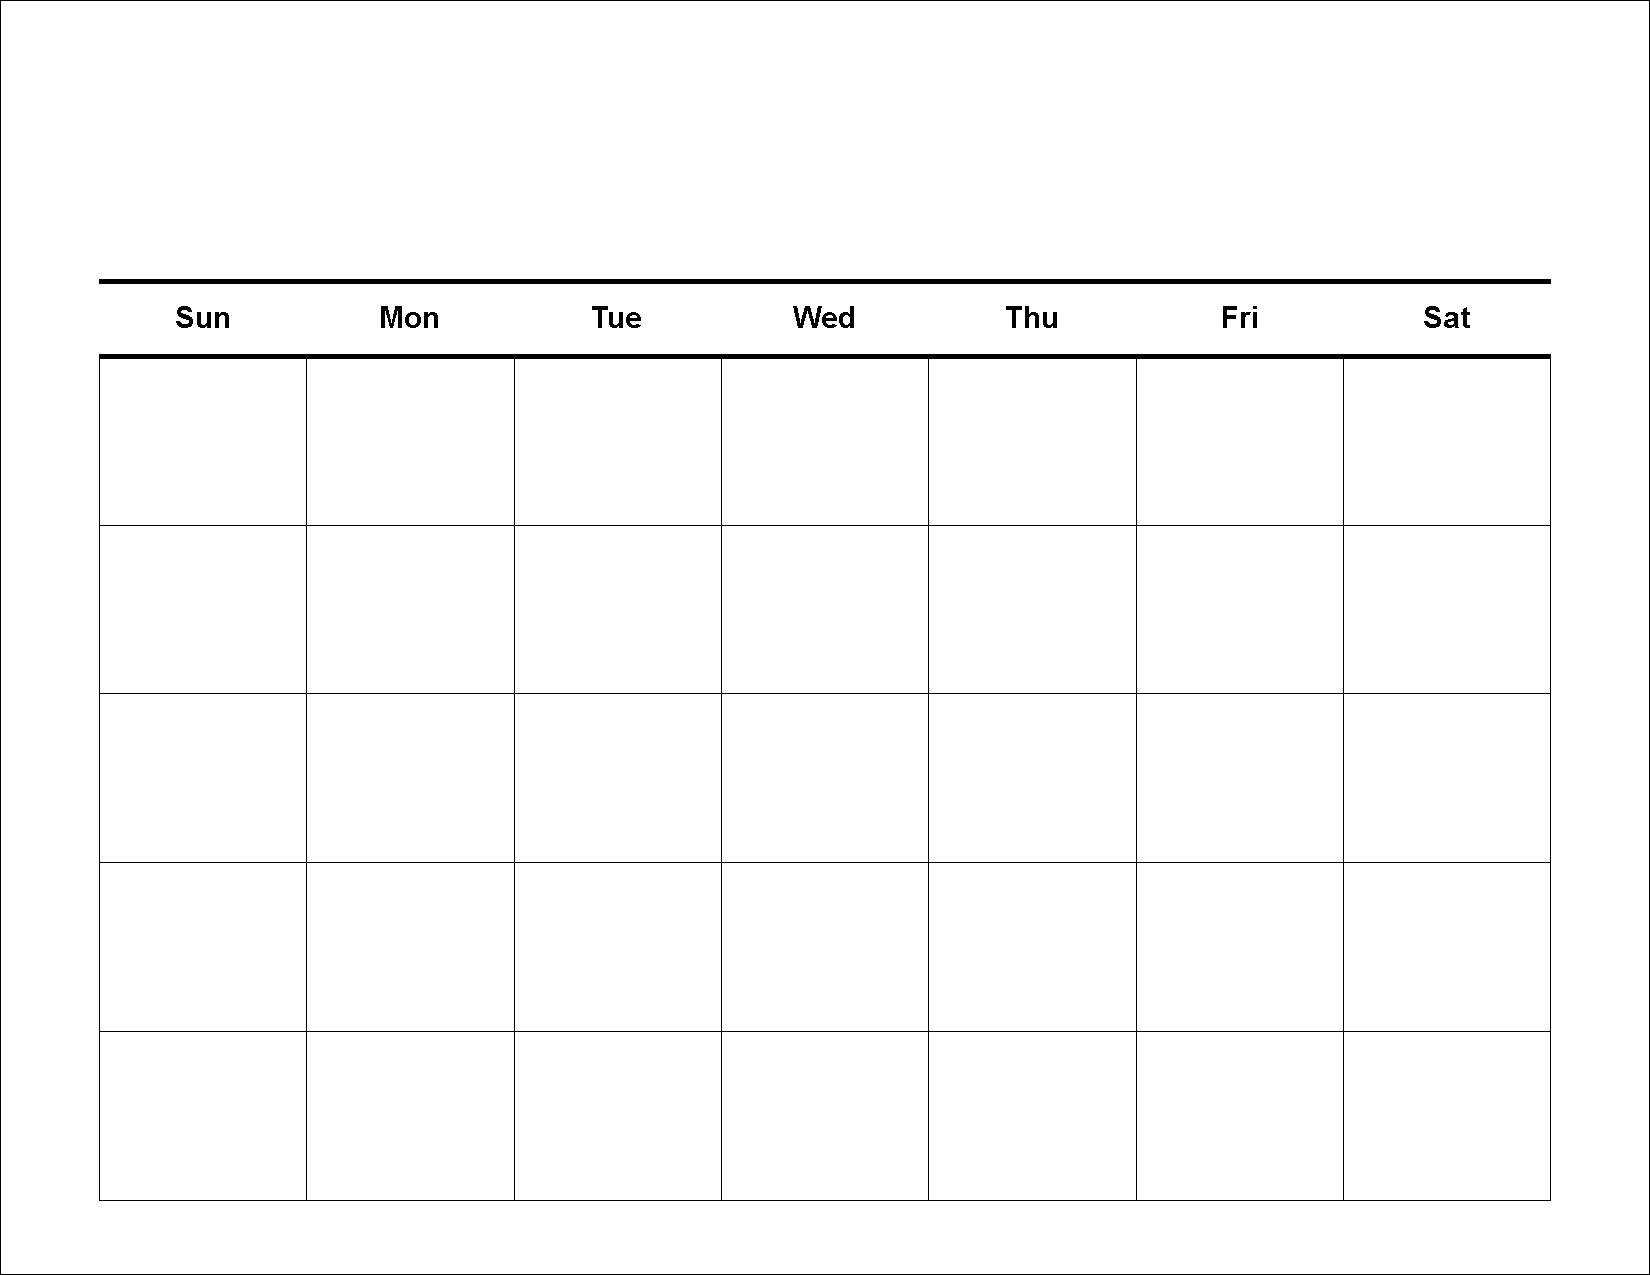 Blank 5 Day Week Calendar | Template Calendar Printable intended for Blank 5 Day Calendar Printable